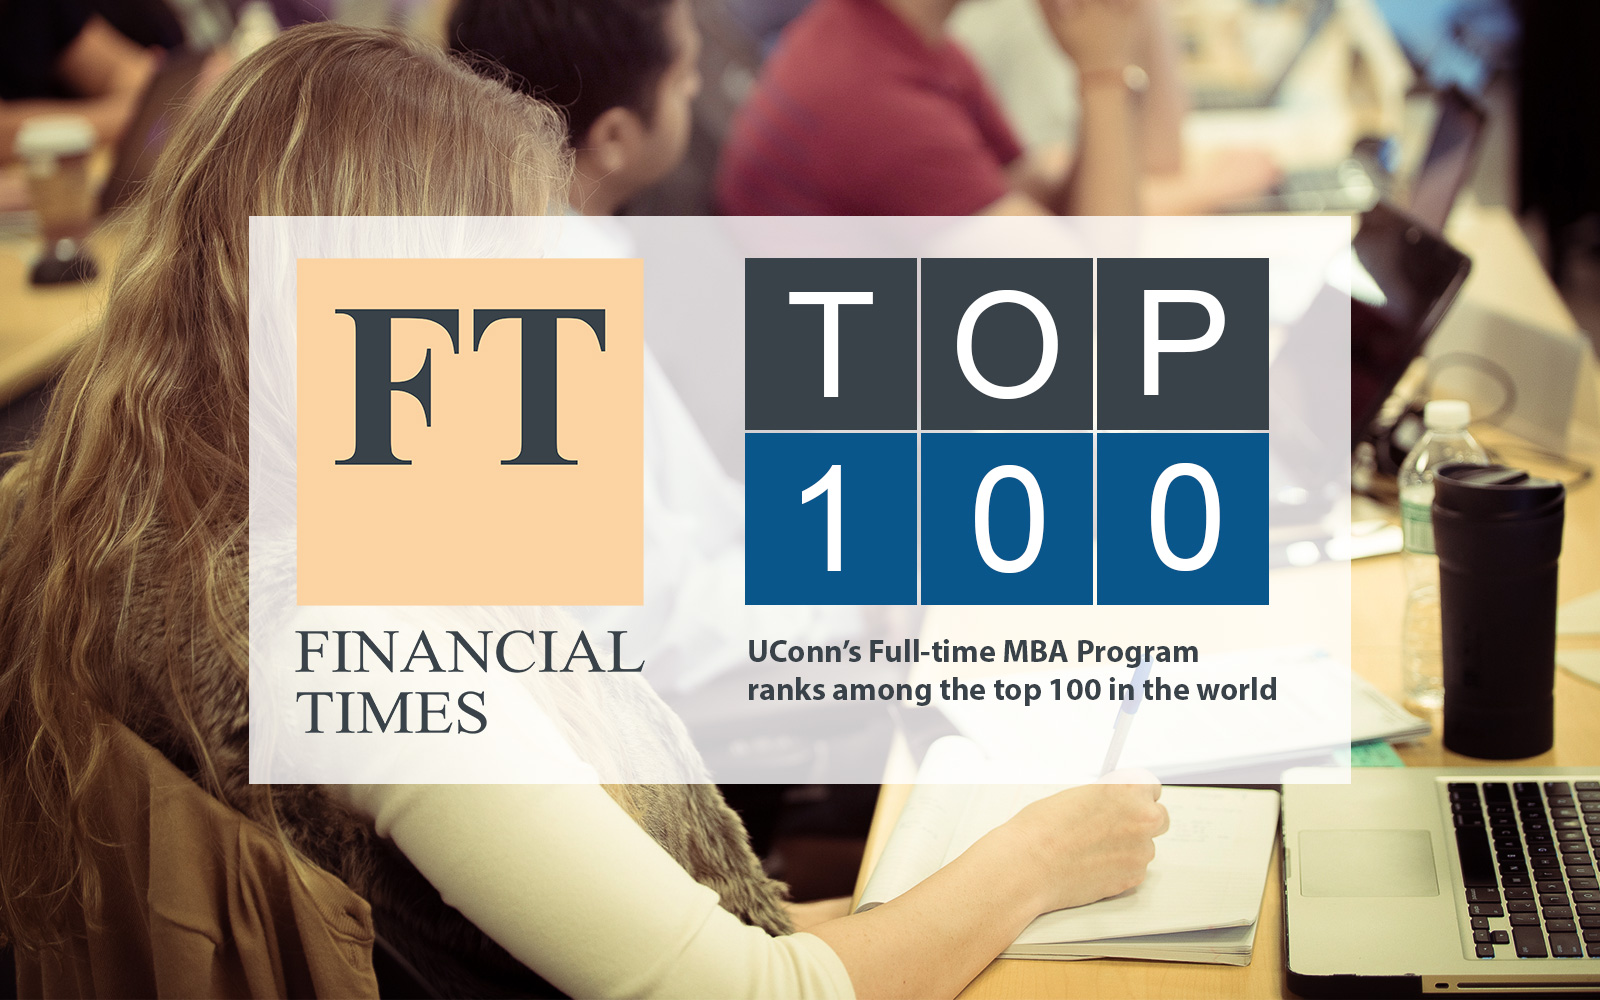 UConn MBA Program Ranked in the Top 100 by Financial Times 2016